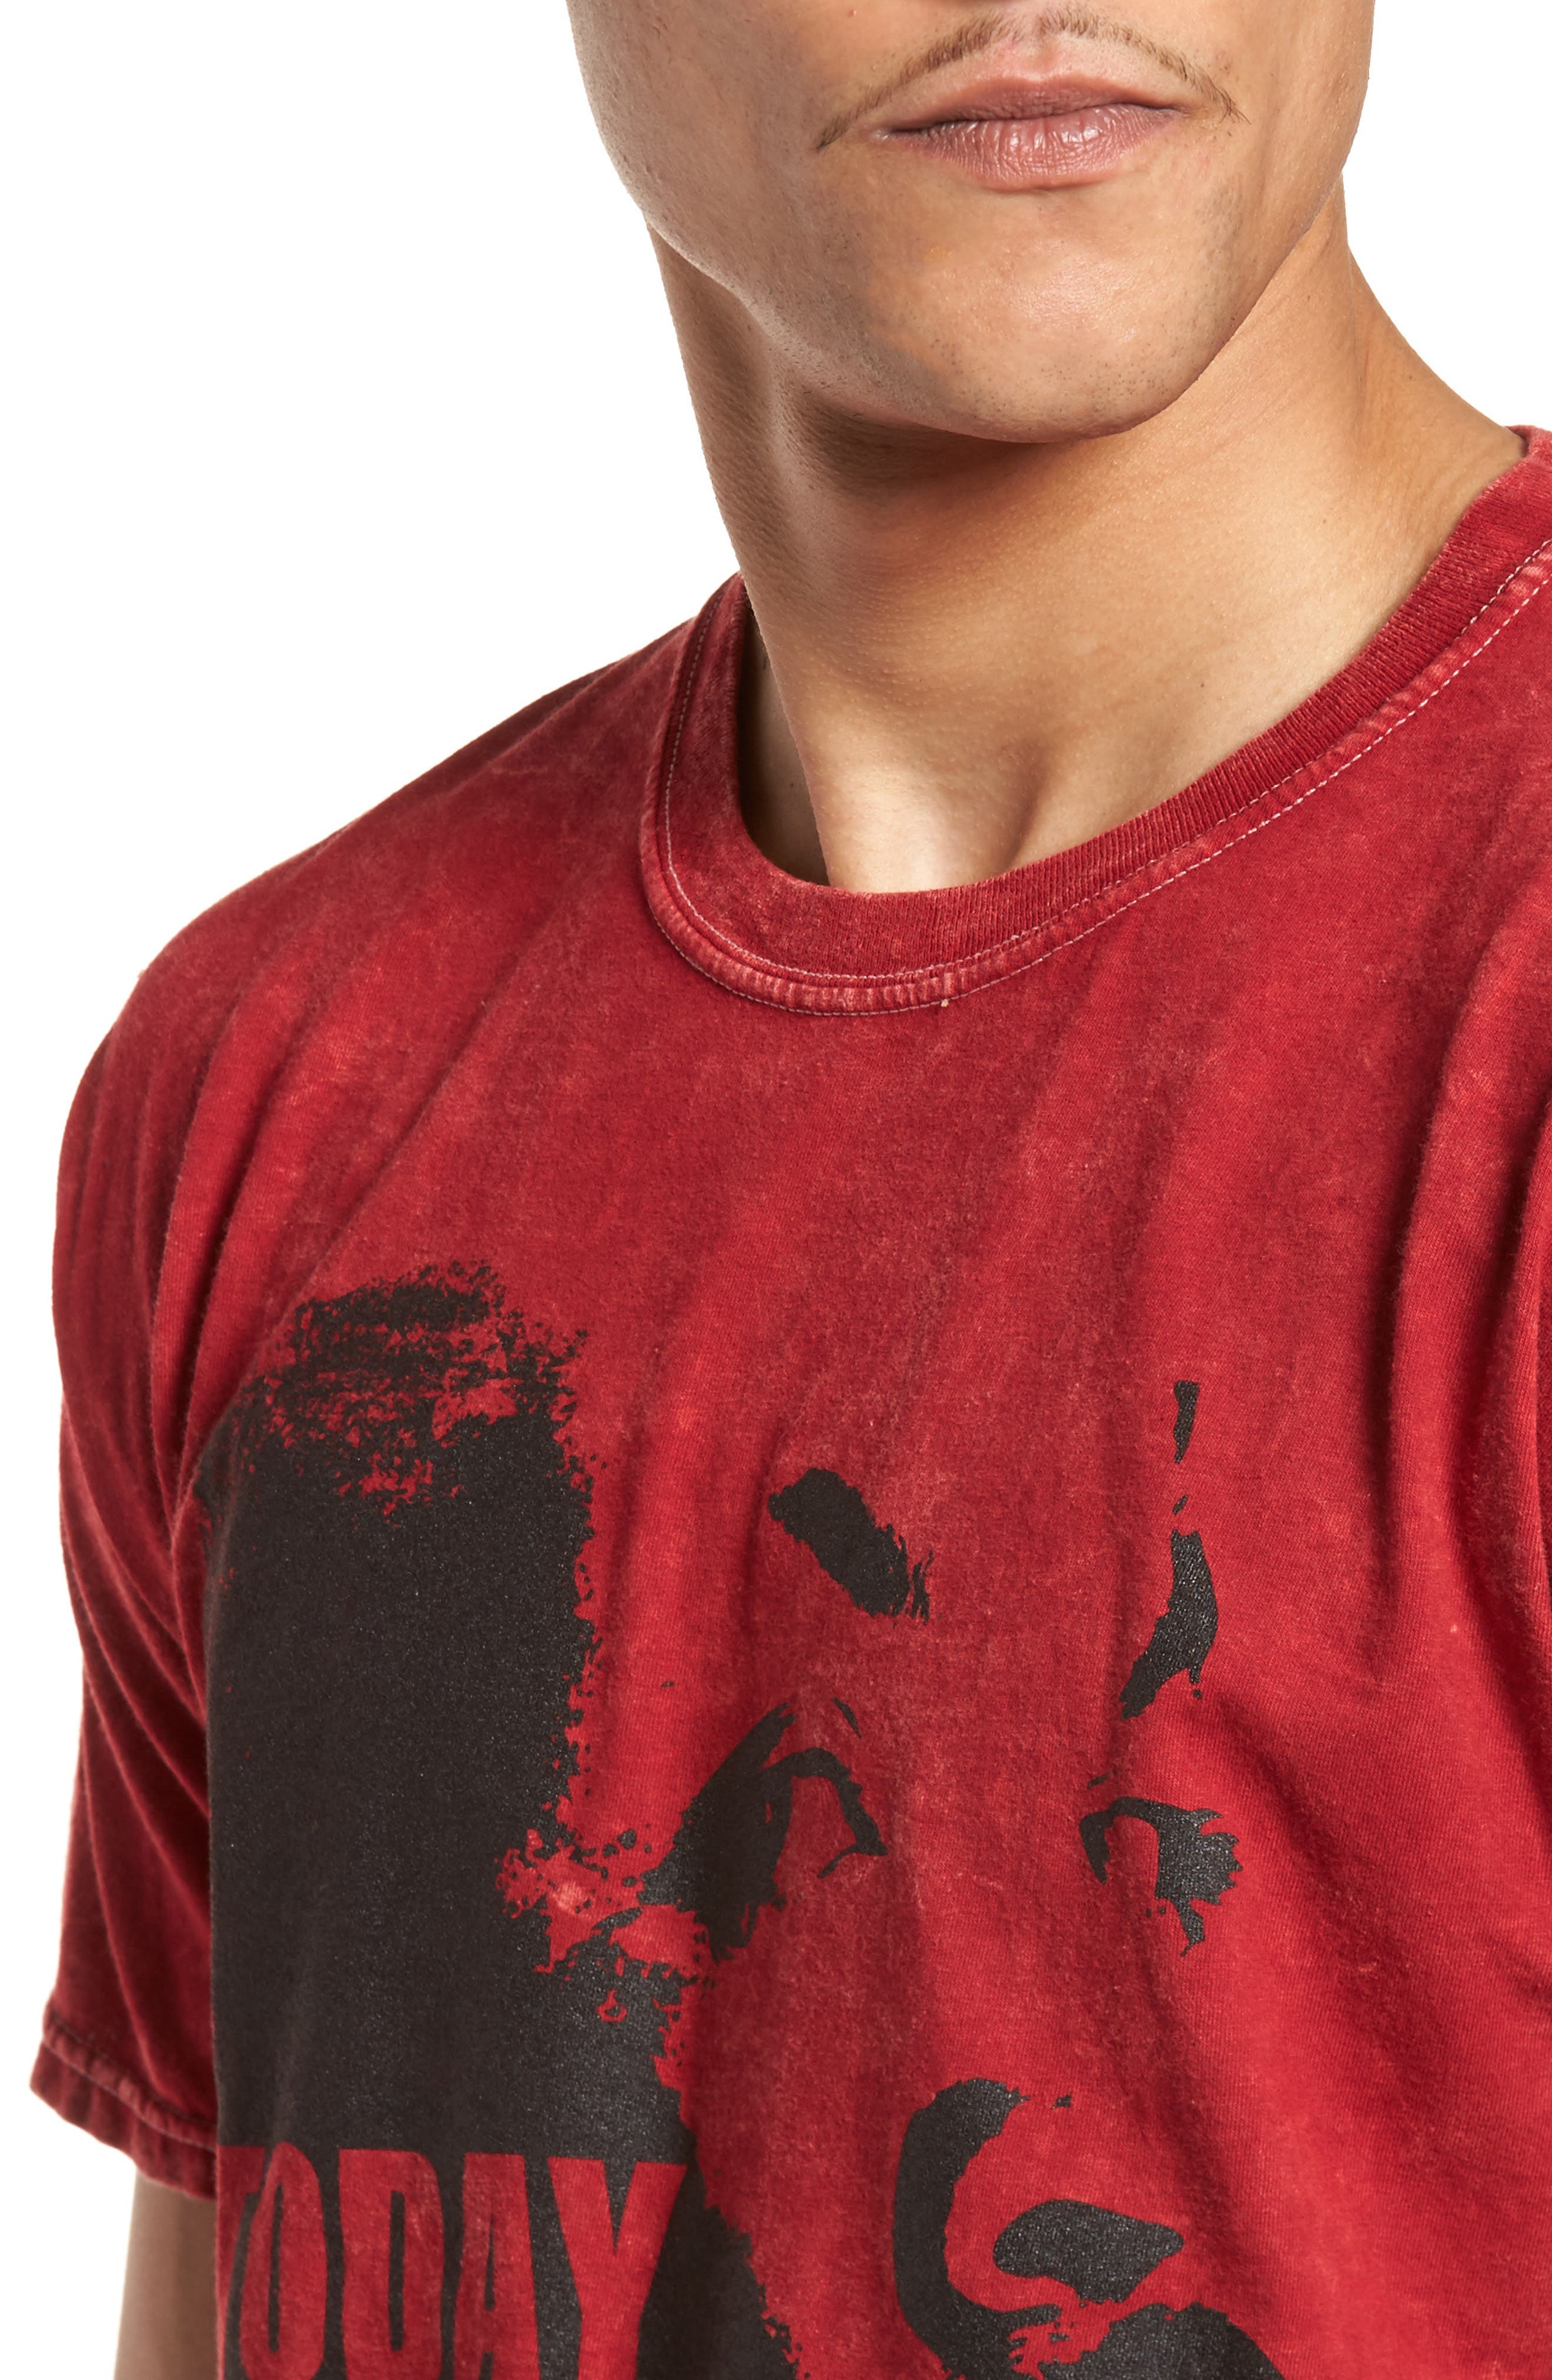 Good Day Graphic T-Shirt,                             Alternate thumbnail 4, color,